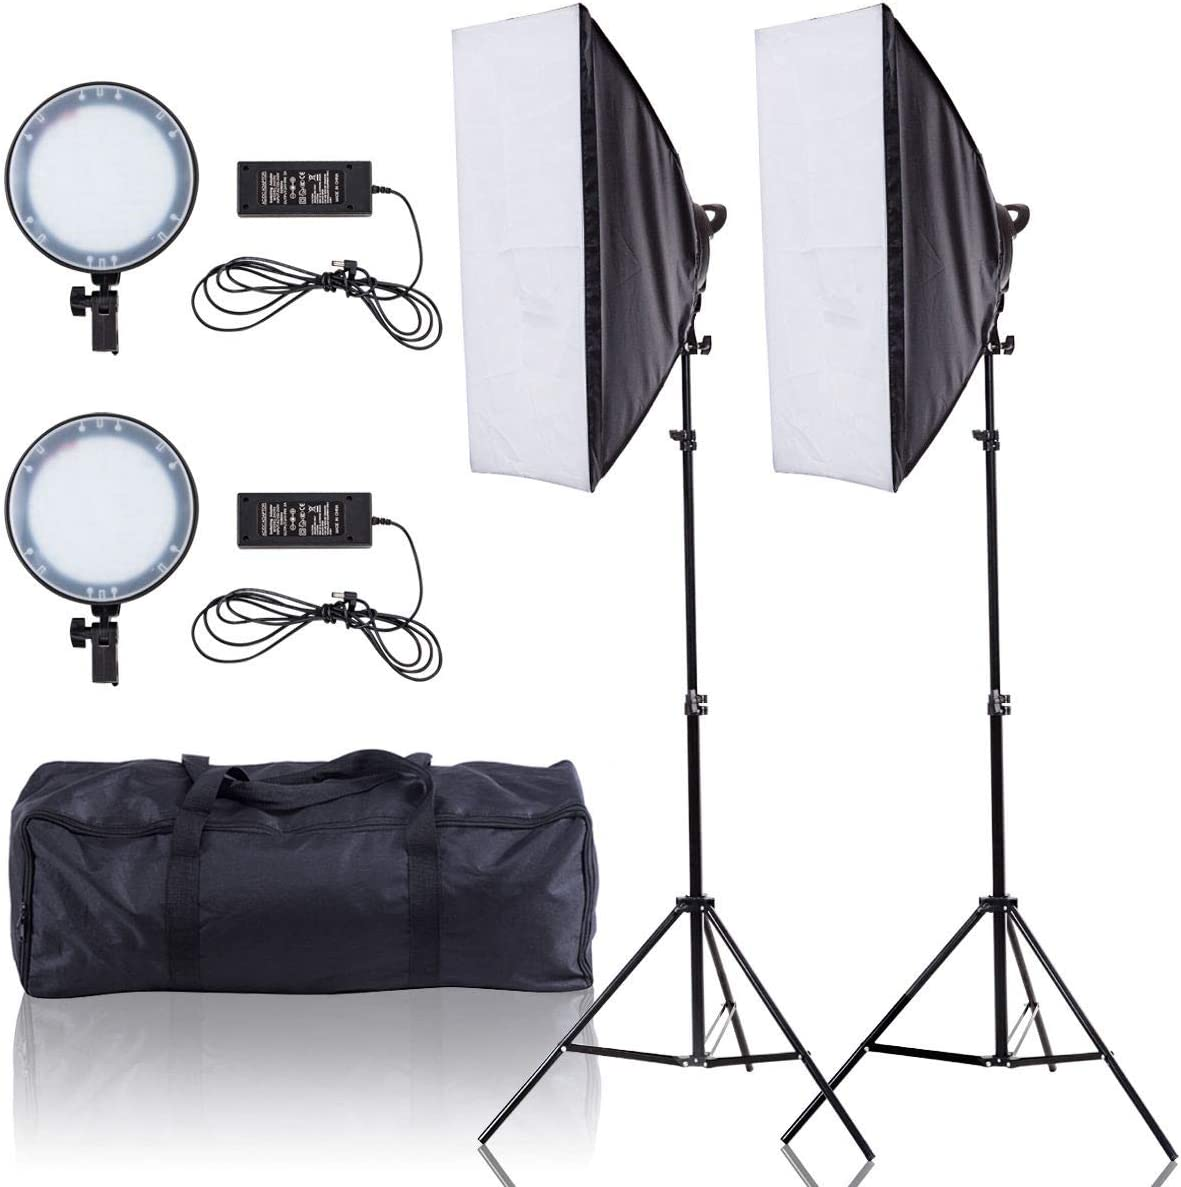 2 x 450W Adjustable Bright LED Softbox with 126 LED Beads